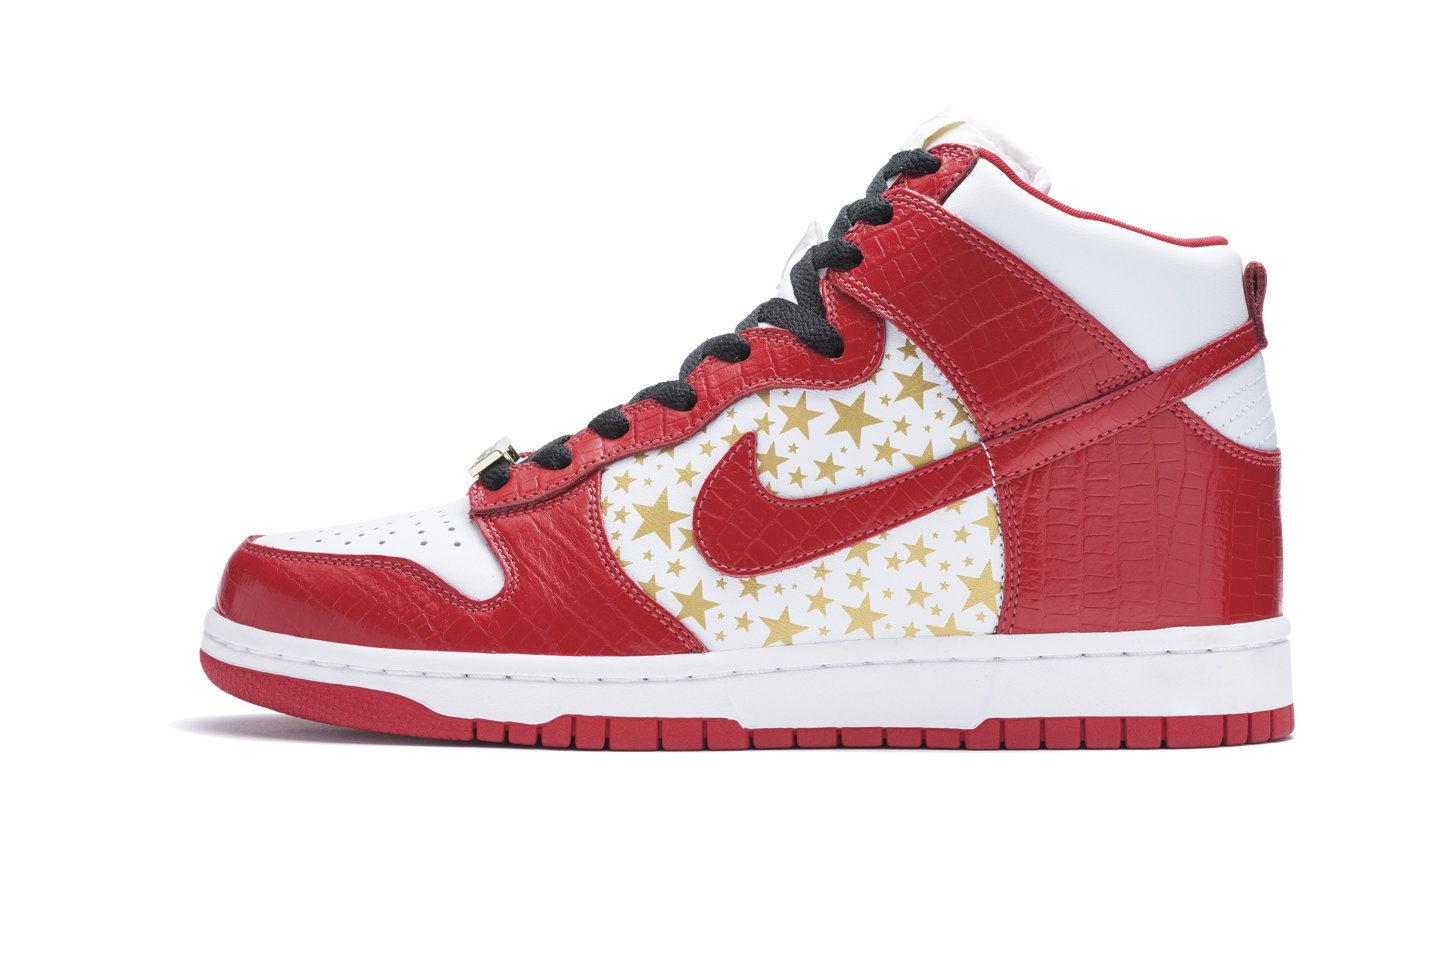 Nike SB Supreme Gold Star Dunk Highs Red 2003